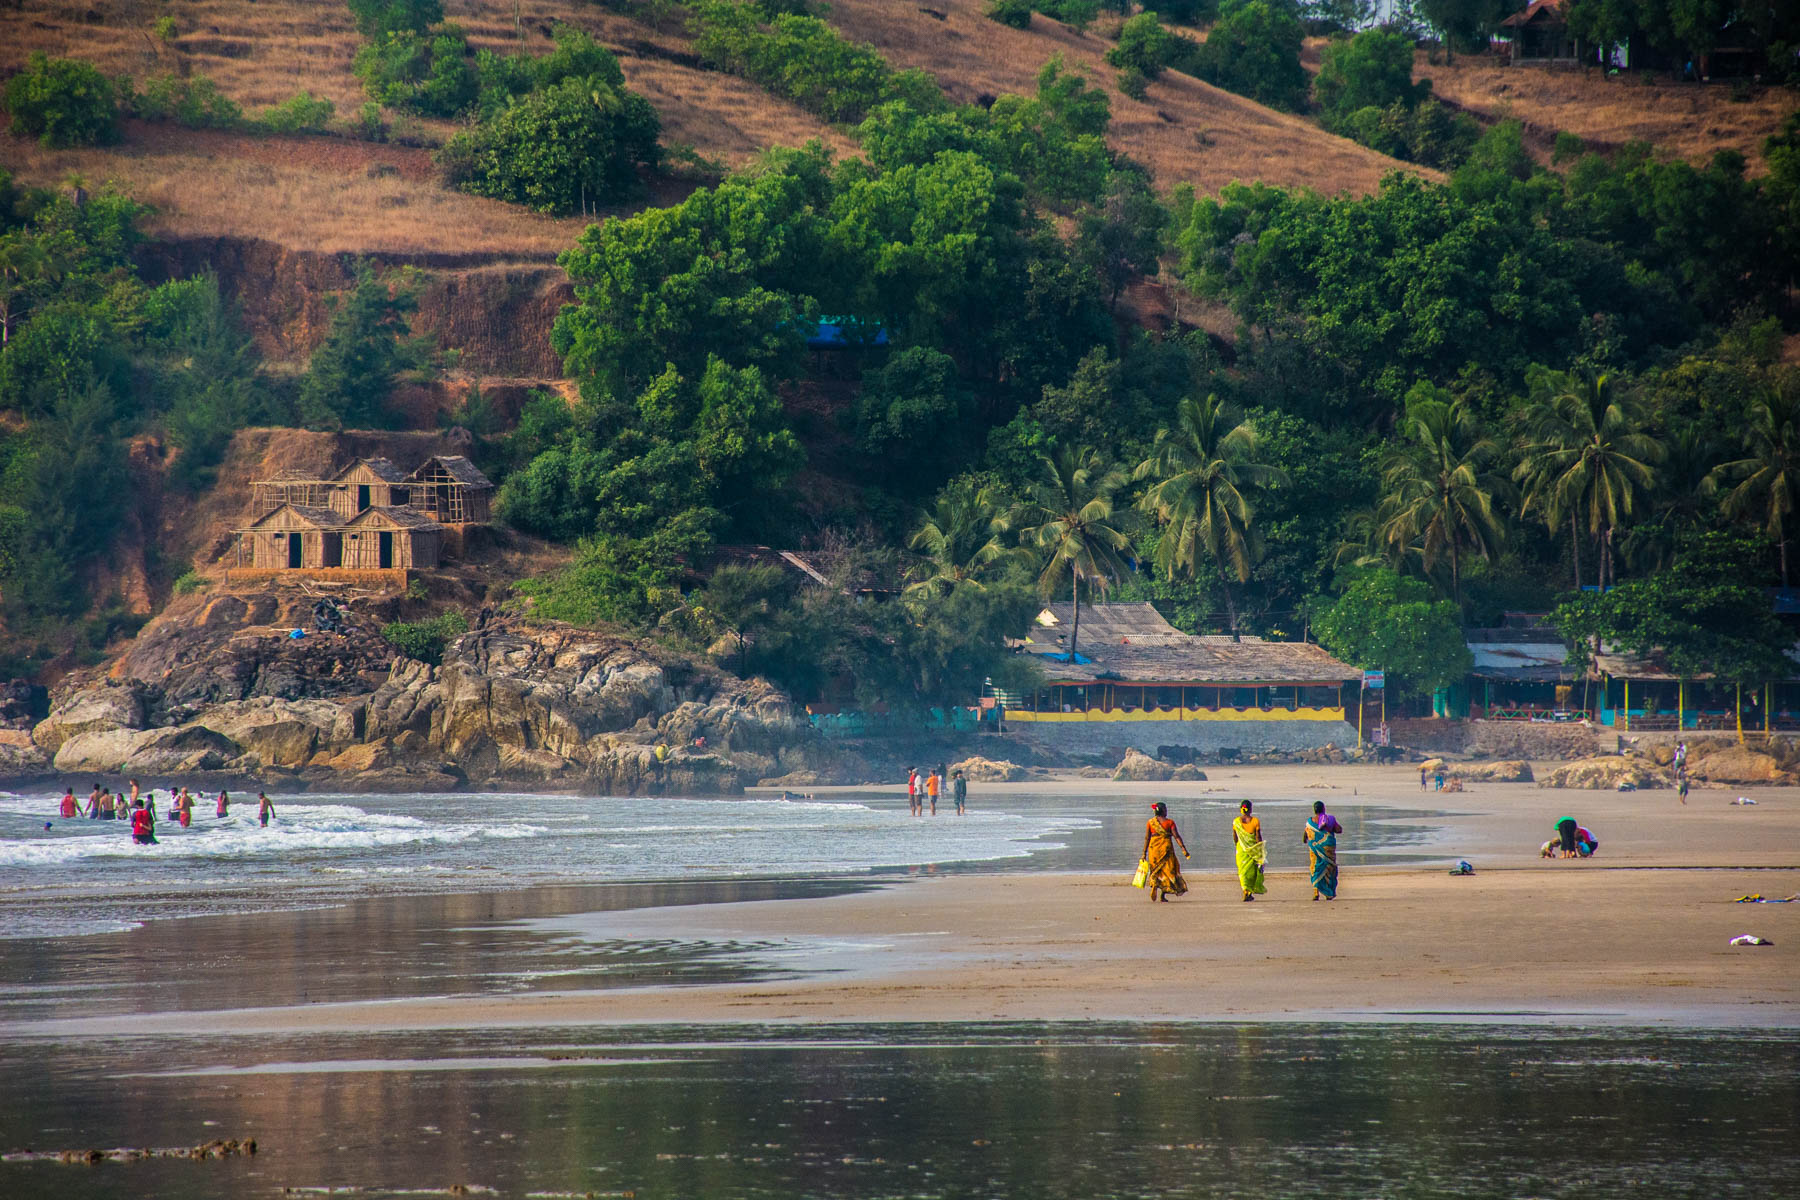 Guide to smoking weed in India - Women walking on Kudle beach in Gokarna, Karnataka - Lost With Purpose travel blog